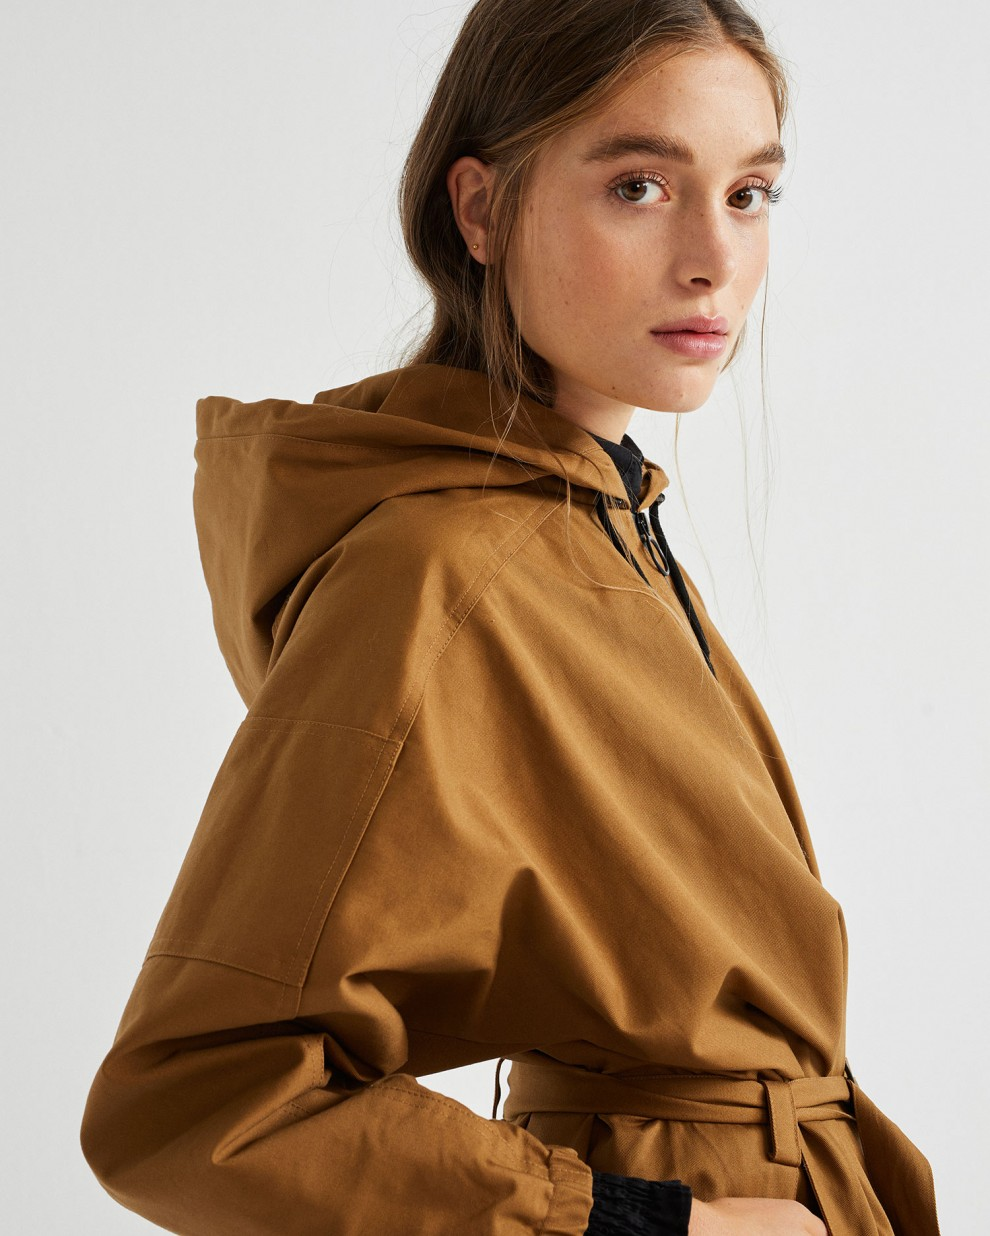 Caramel Wizard jacket